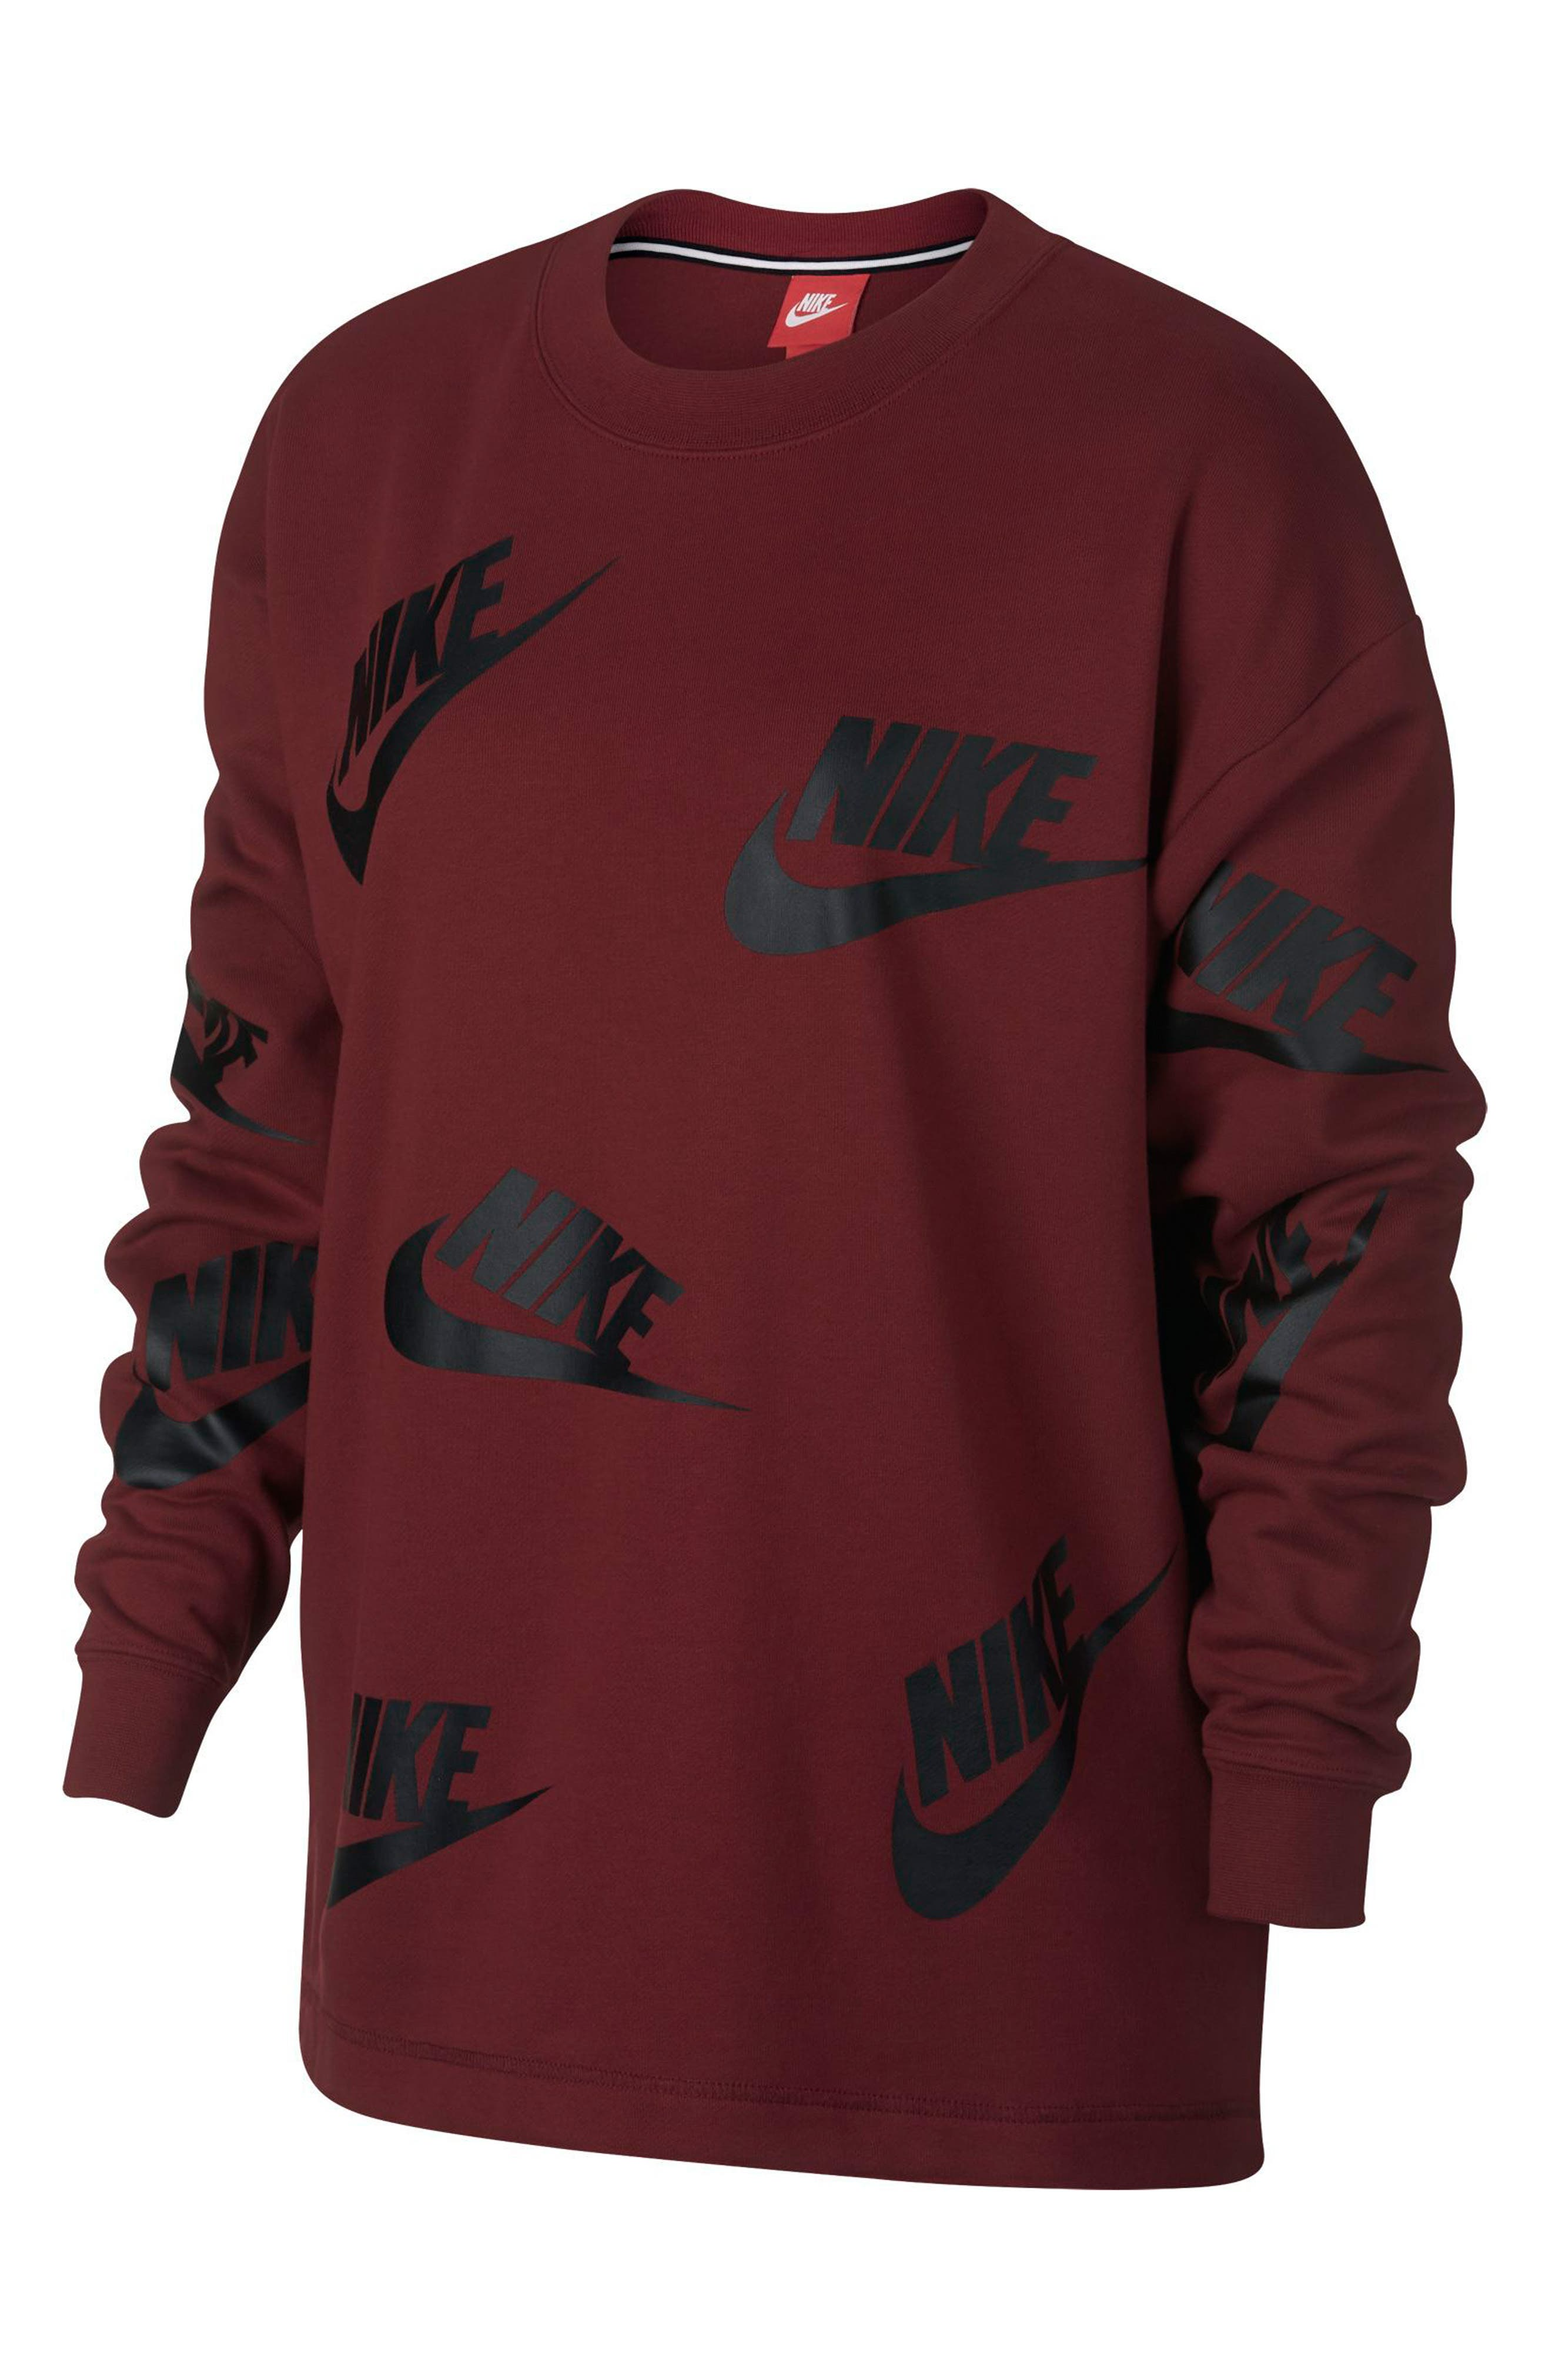 NIKE Sportswear Futura Women's Crewneck Sweatshirt, Main, color, 600